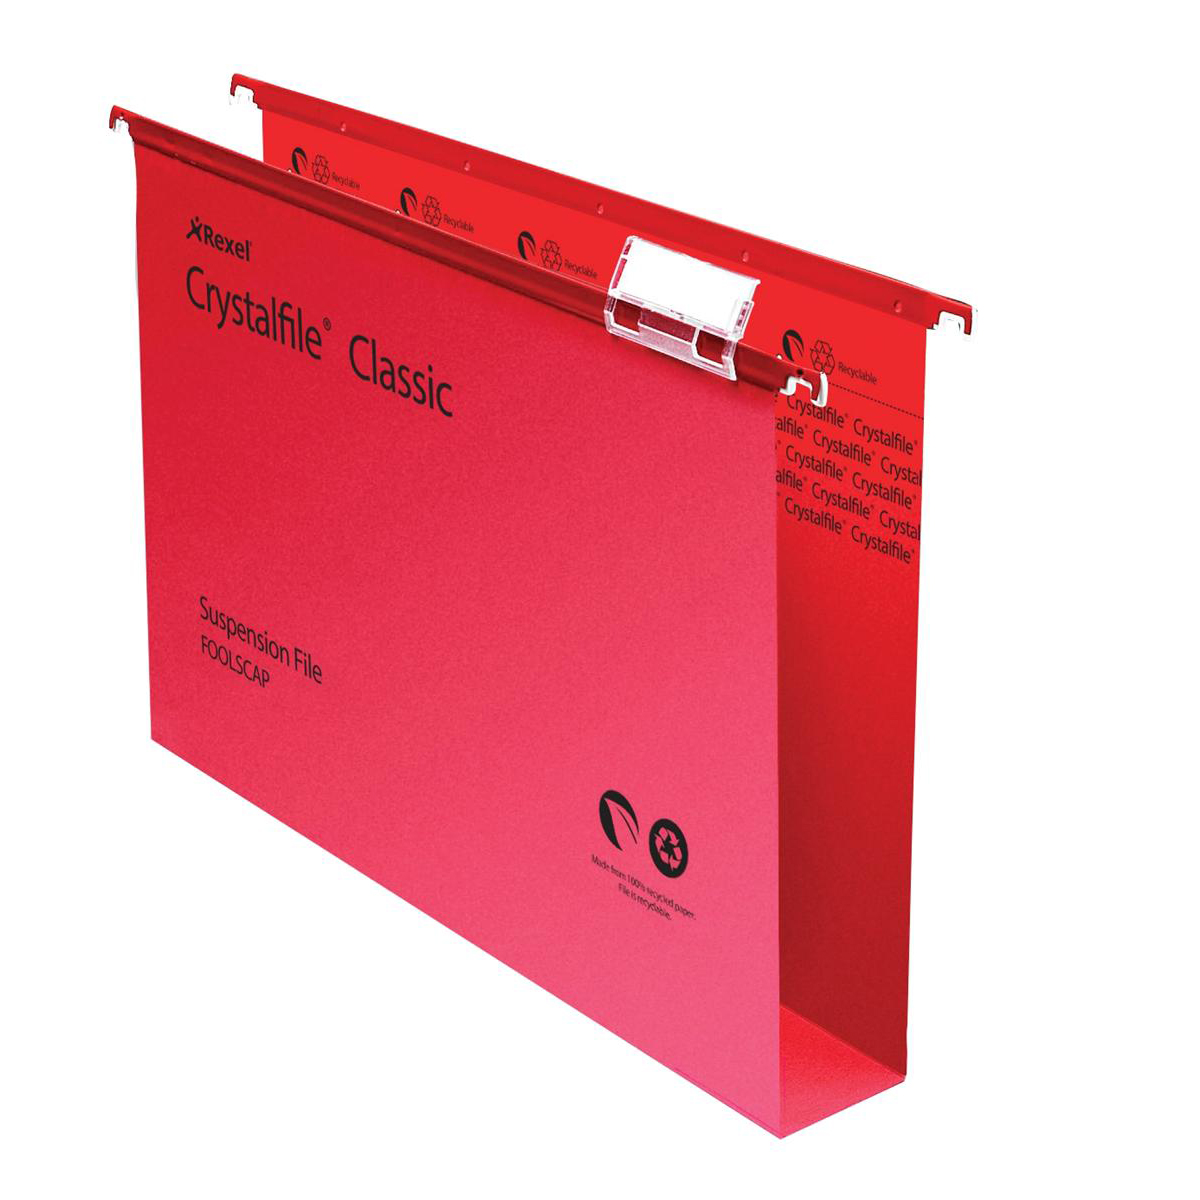 Rexel Crystalfile Classic Suspension File Manilla 50mm Wide-base 230gsm Foolscap Red Ref 71752 Pack 50